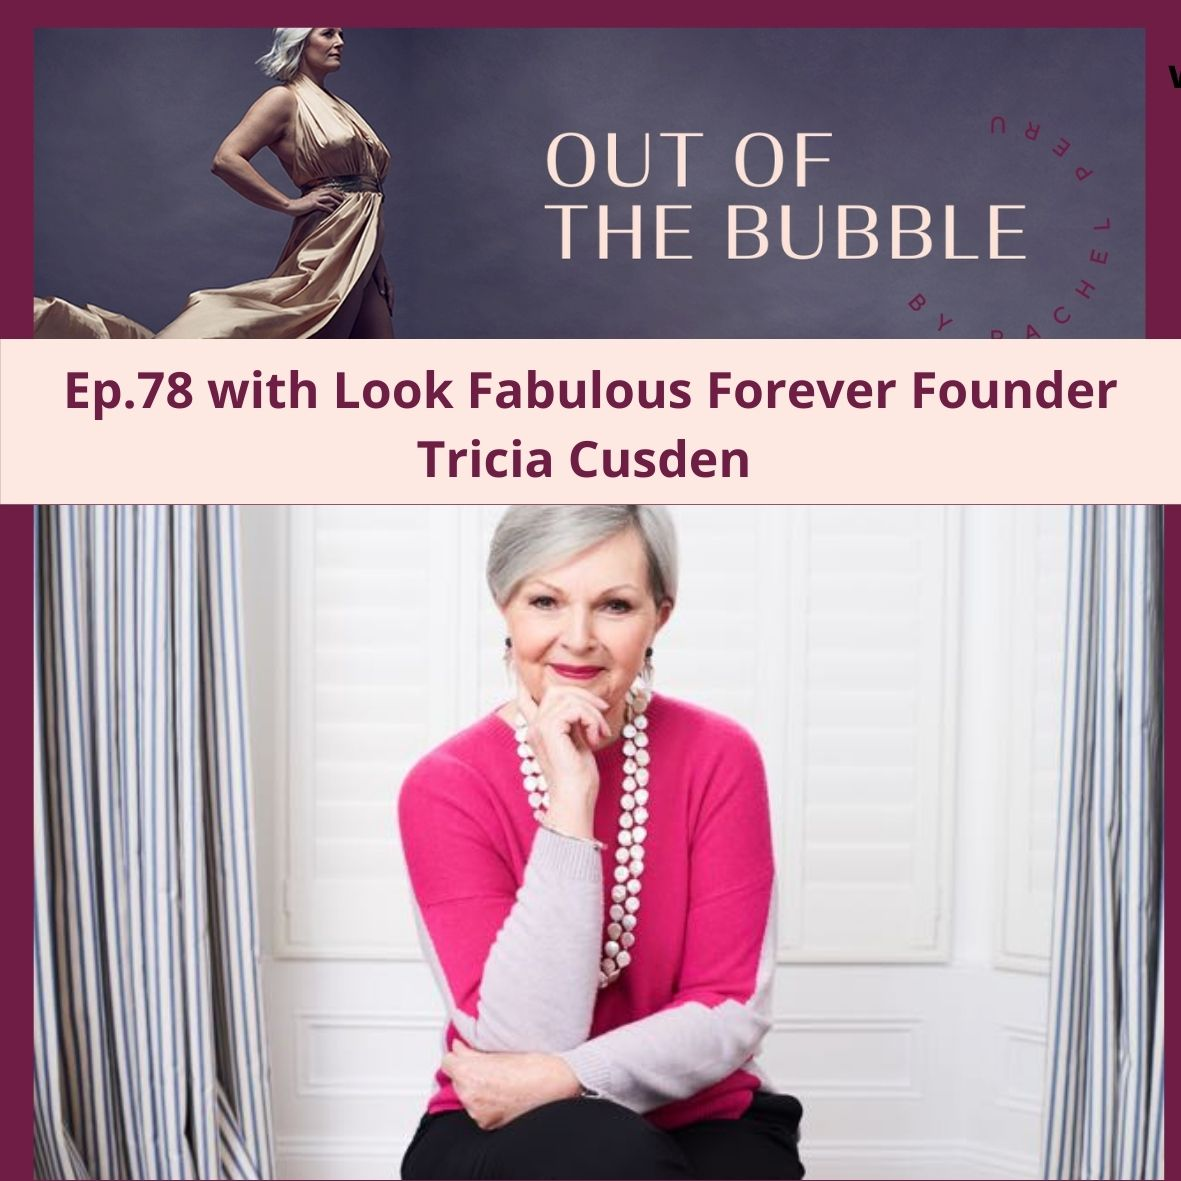 Ep.78 Out of the Bubble with Tricia Cusden, founder of Look Fabulous Forever